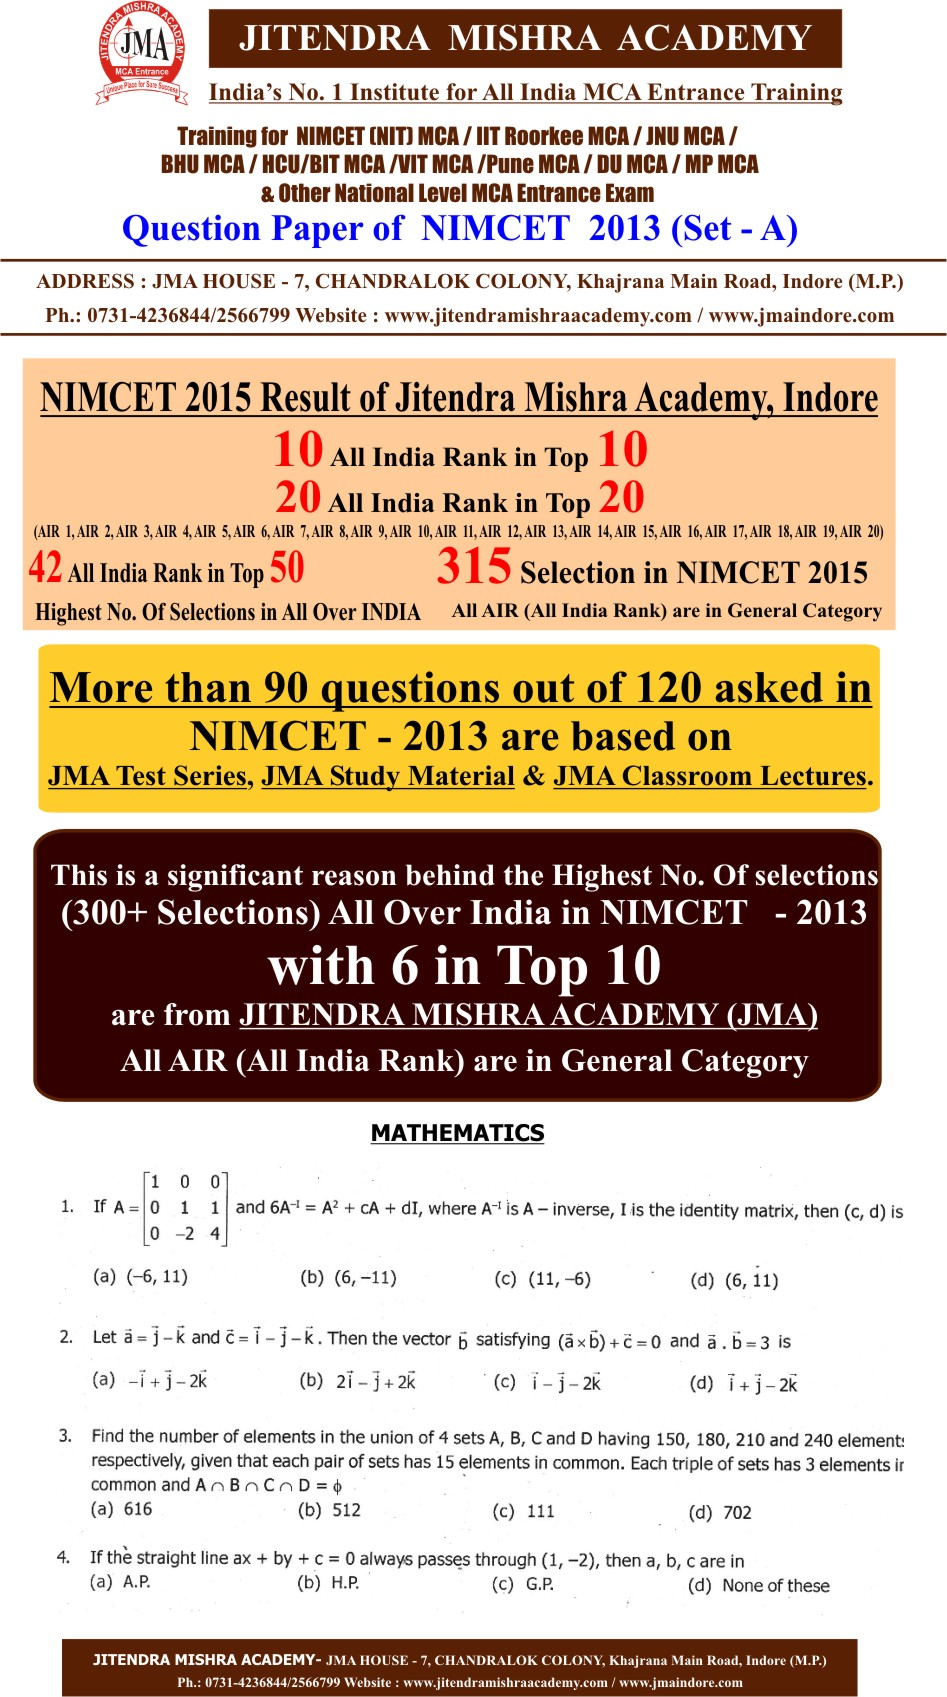 NIMCET 2013 PAPER (FIRST PAGE)